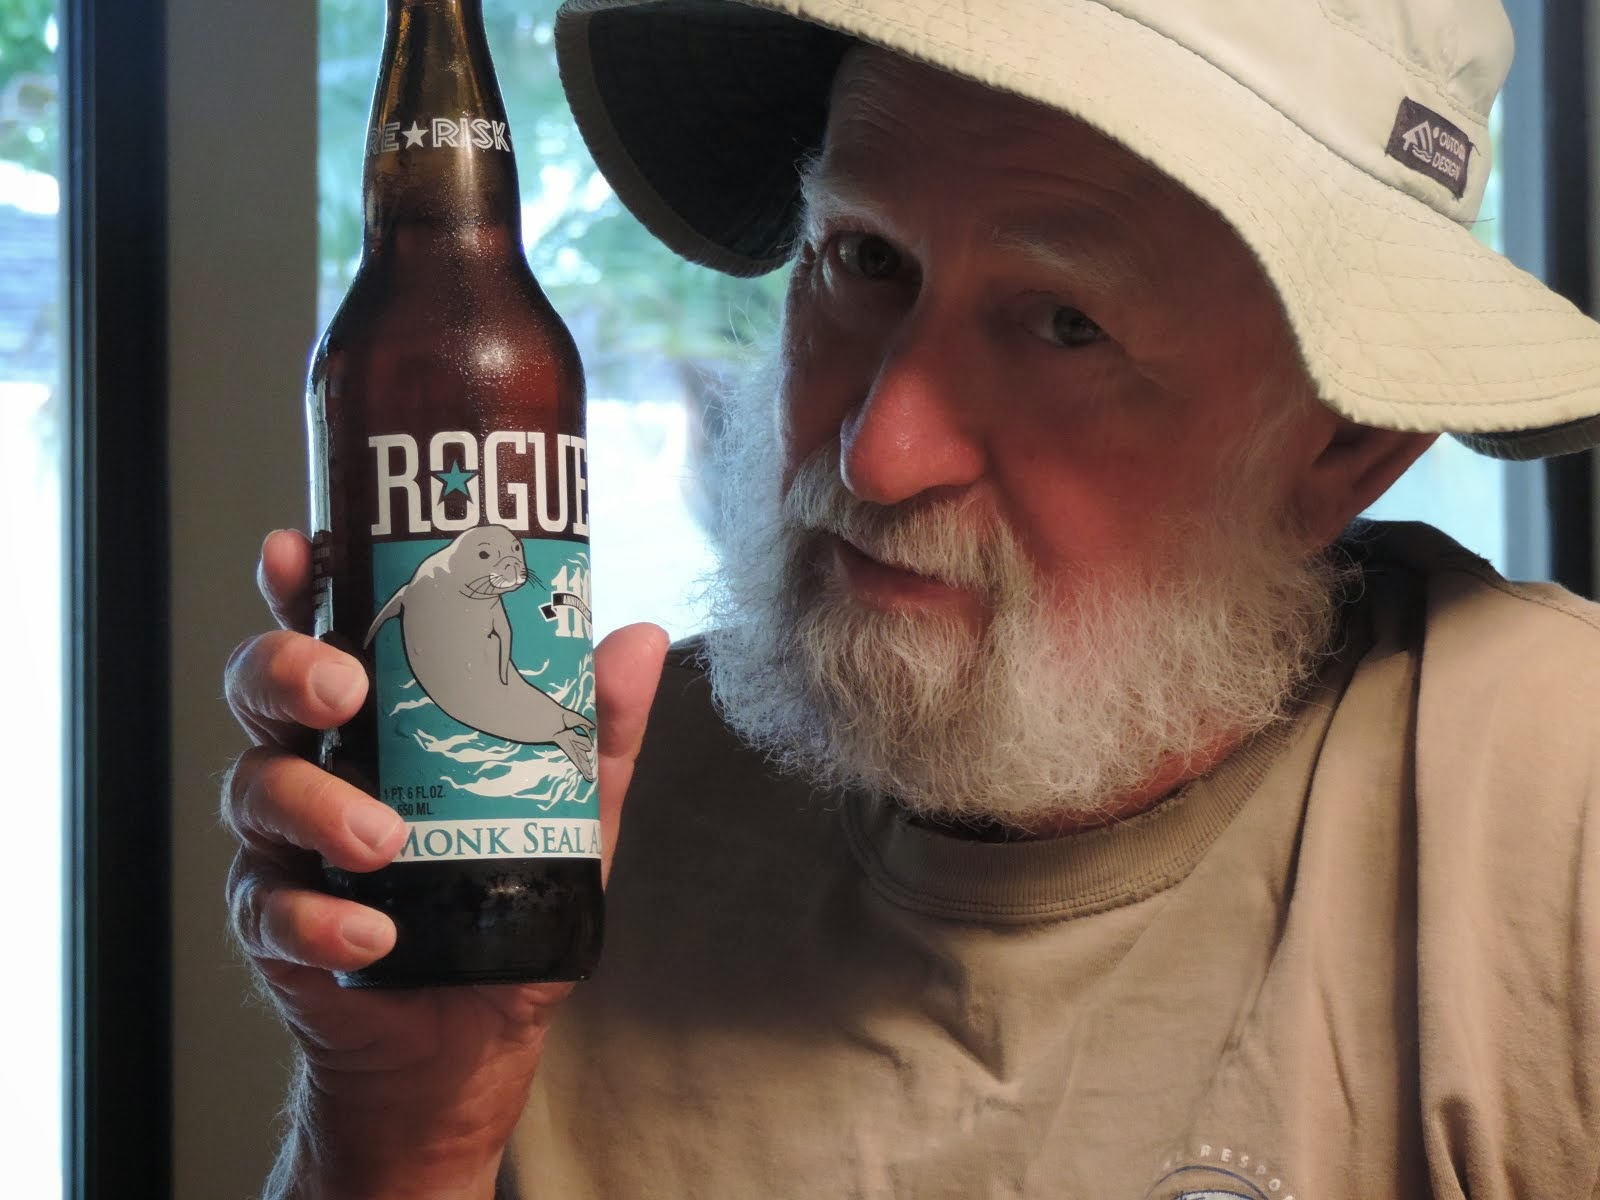 Limited Edition Rogue Monk Seal Ale